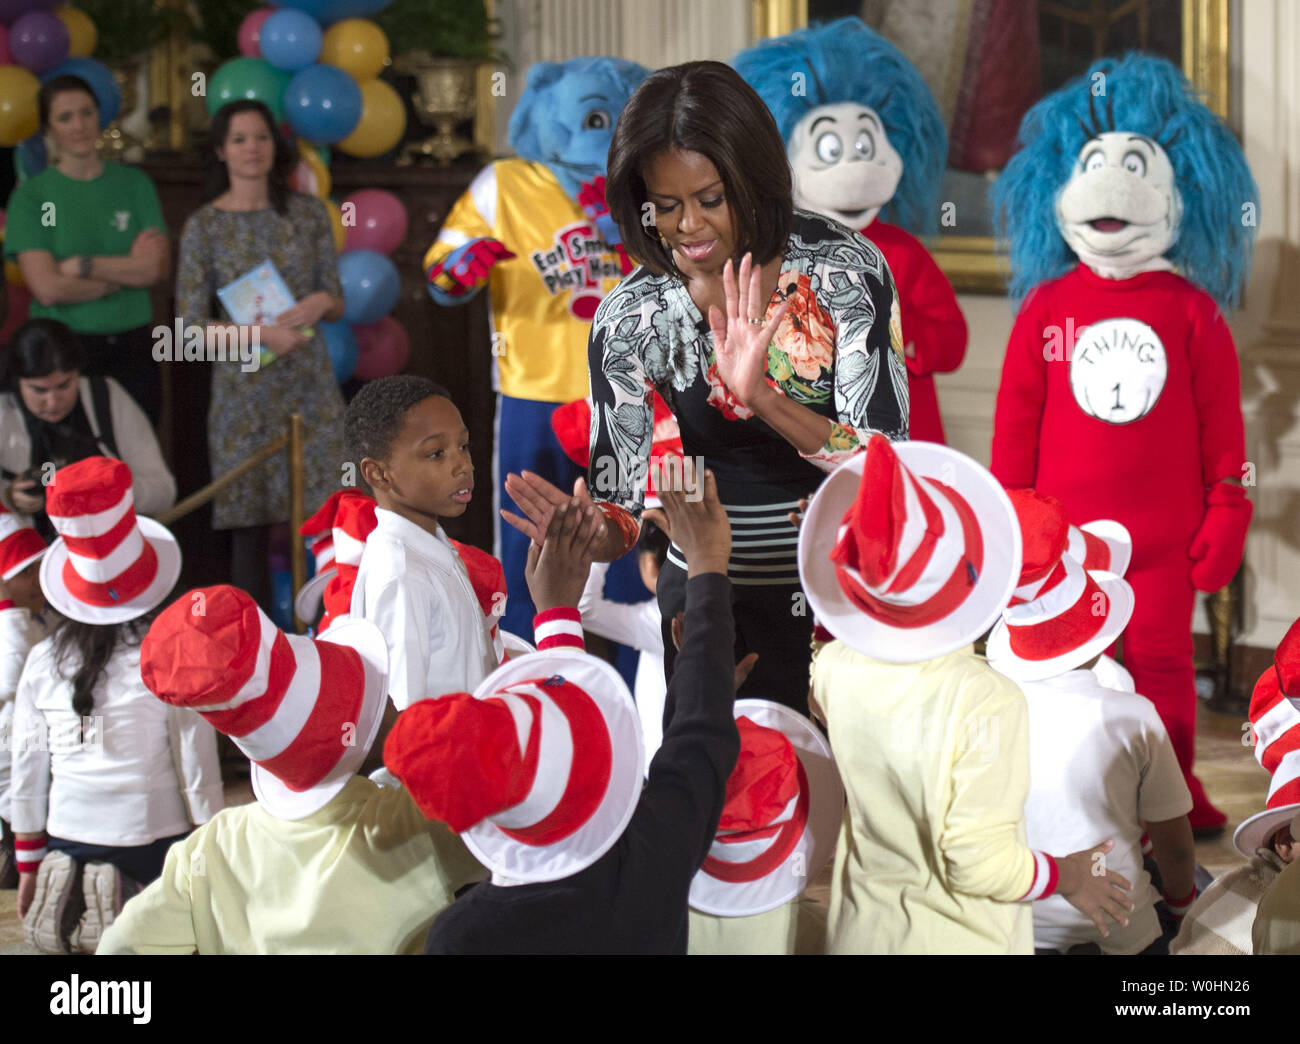 First Lady Michelle Obama greets school children after reading Dr. Seuss's book, 'Oh, The Things You Can Do That Are Good for You: All About Staying Healthy,'  in the East Room at the White House in Washington, D.C. on January 21, 2015. The event was part of the First Lady's Let's Move! initiative to inform children about making health life decisions and staying active. Photo by Kevin Dietsch/UPI - Stock Image